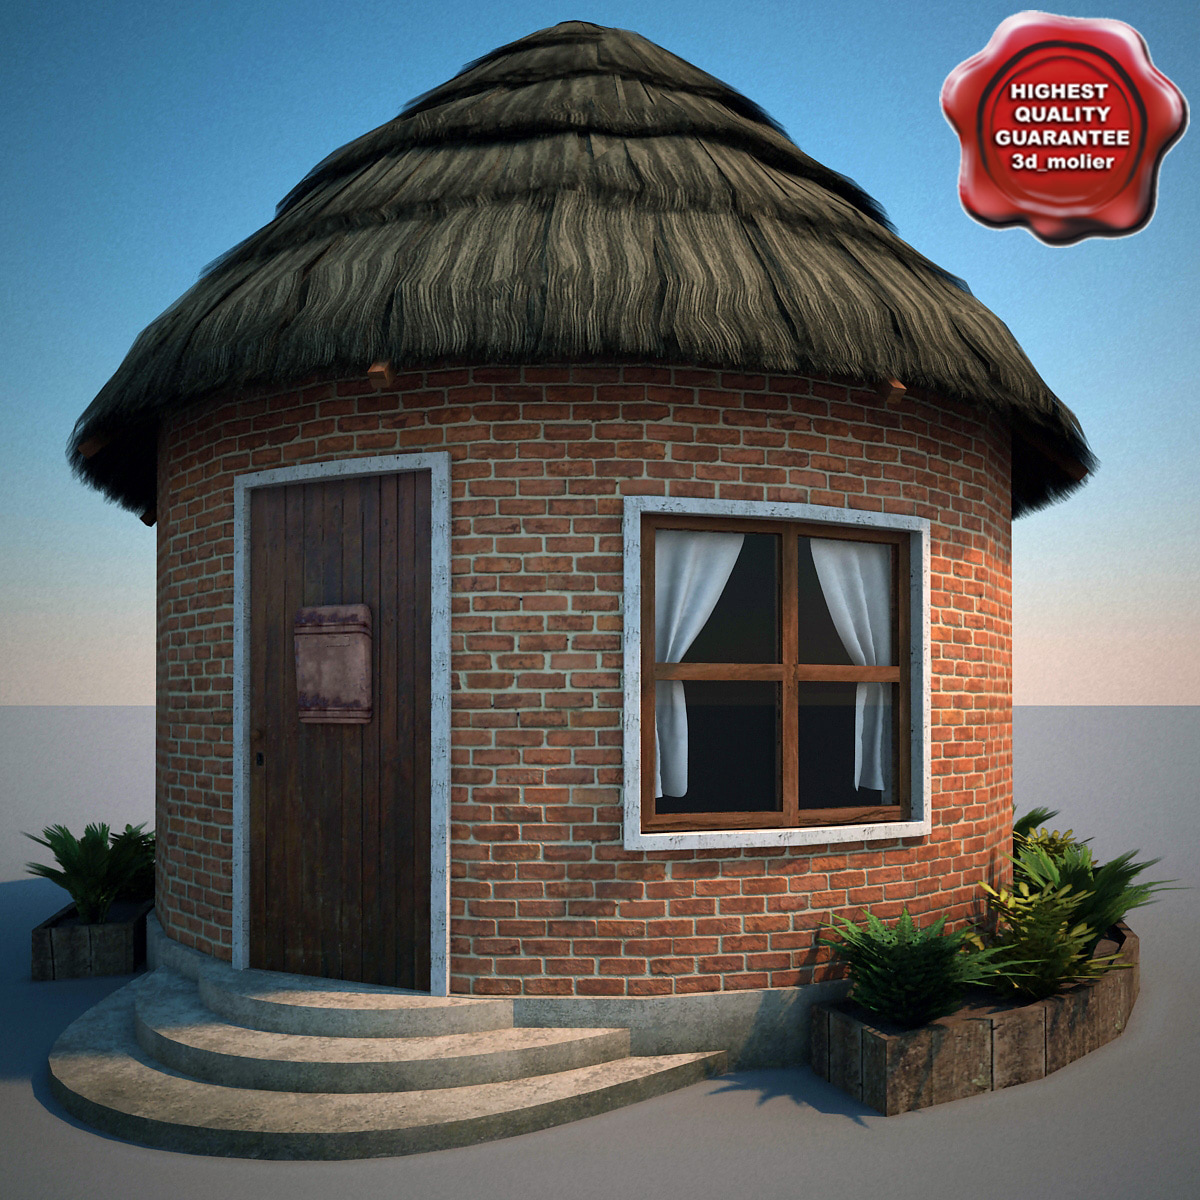 Thatch_Roofed_House_00.jpg